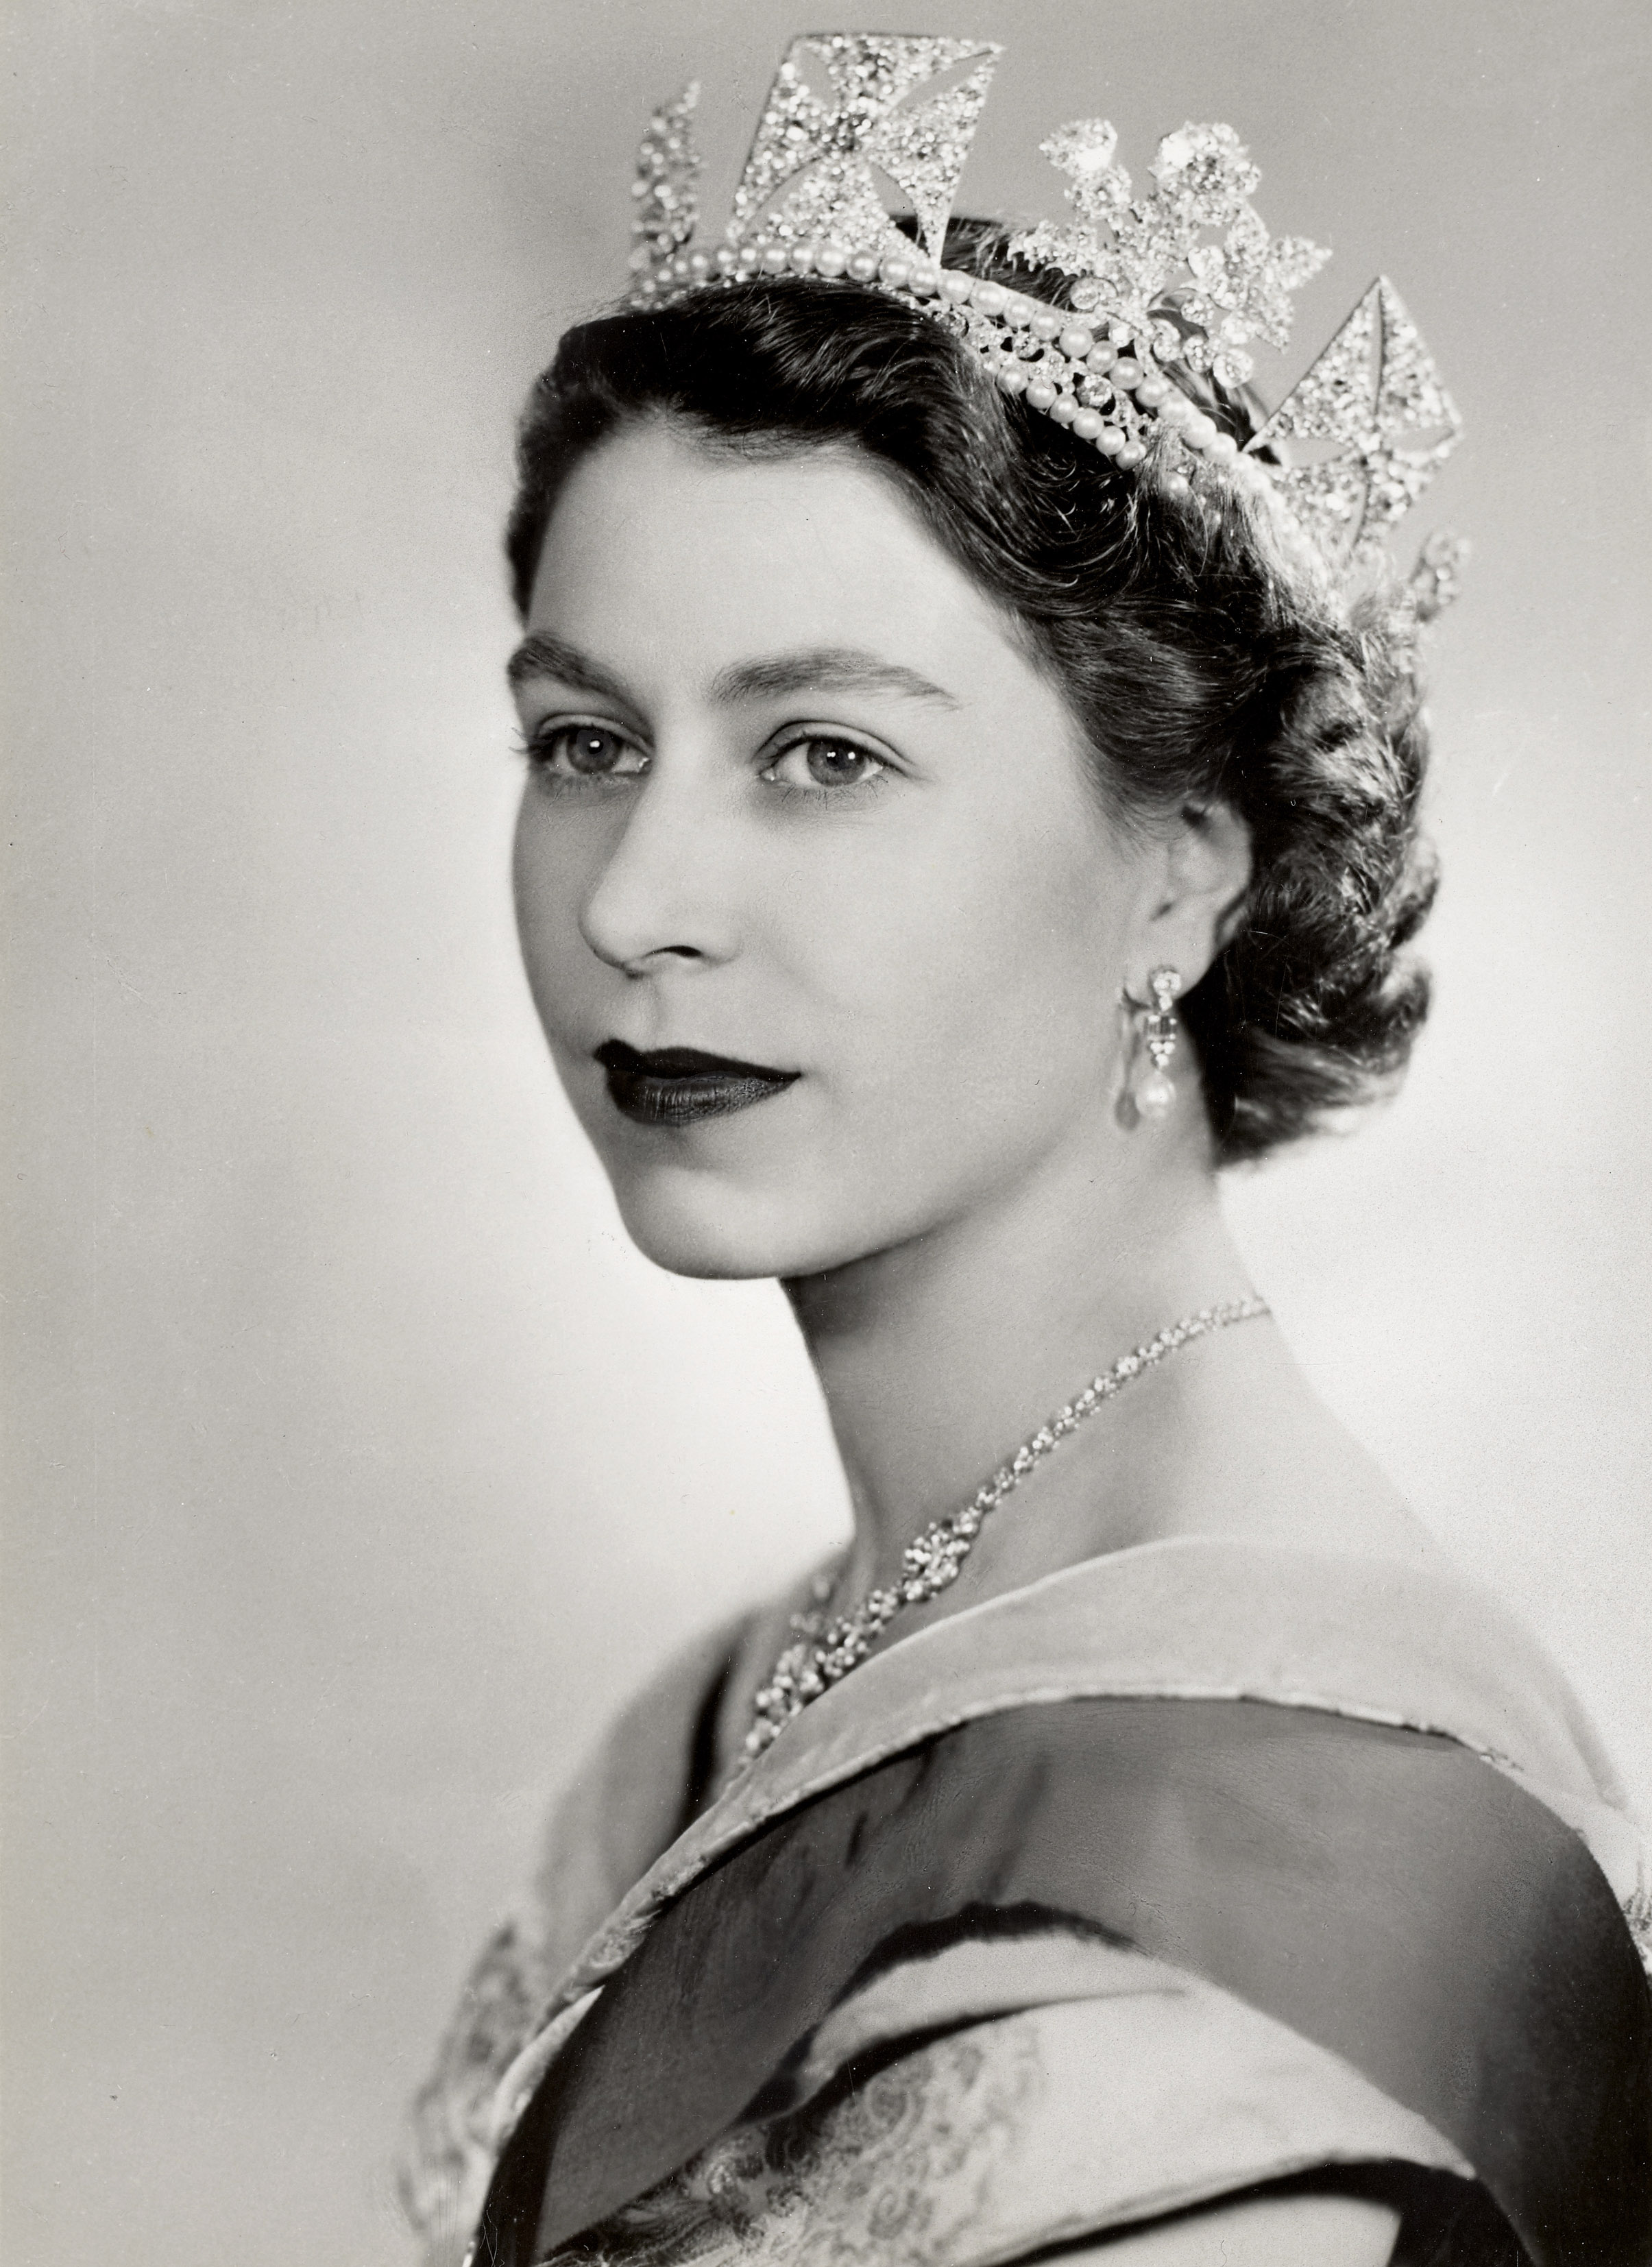 HM Queen Elizabeth II, The Queen: Portraits of a Monarch - Windsor Castle